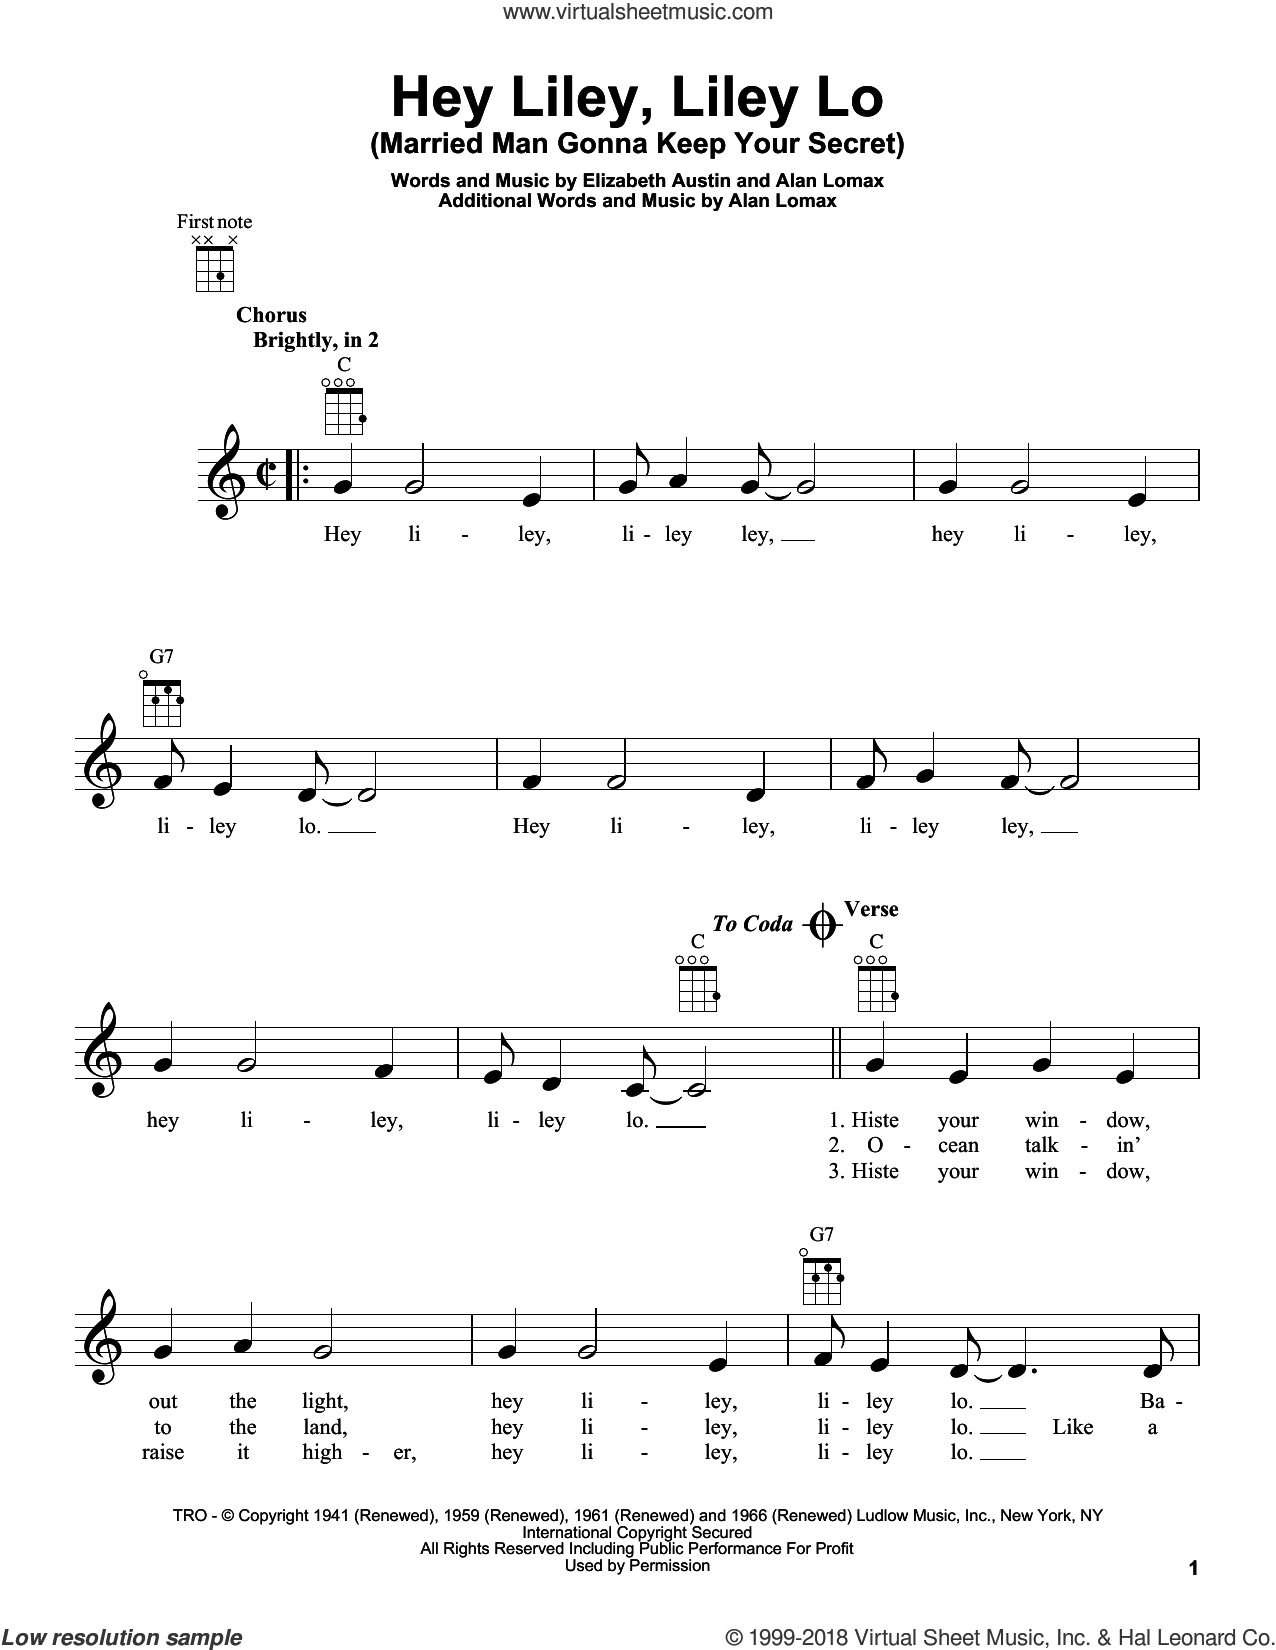 Hey Liley, Liley Lo (Married Man Gonna Keep Your Secret) sheet music for ukulele by Elizabeth Austin and John A. Lomax, intermediate skill level